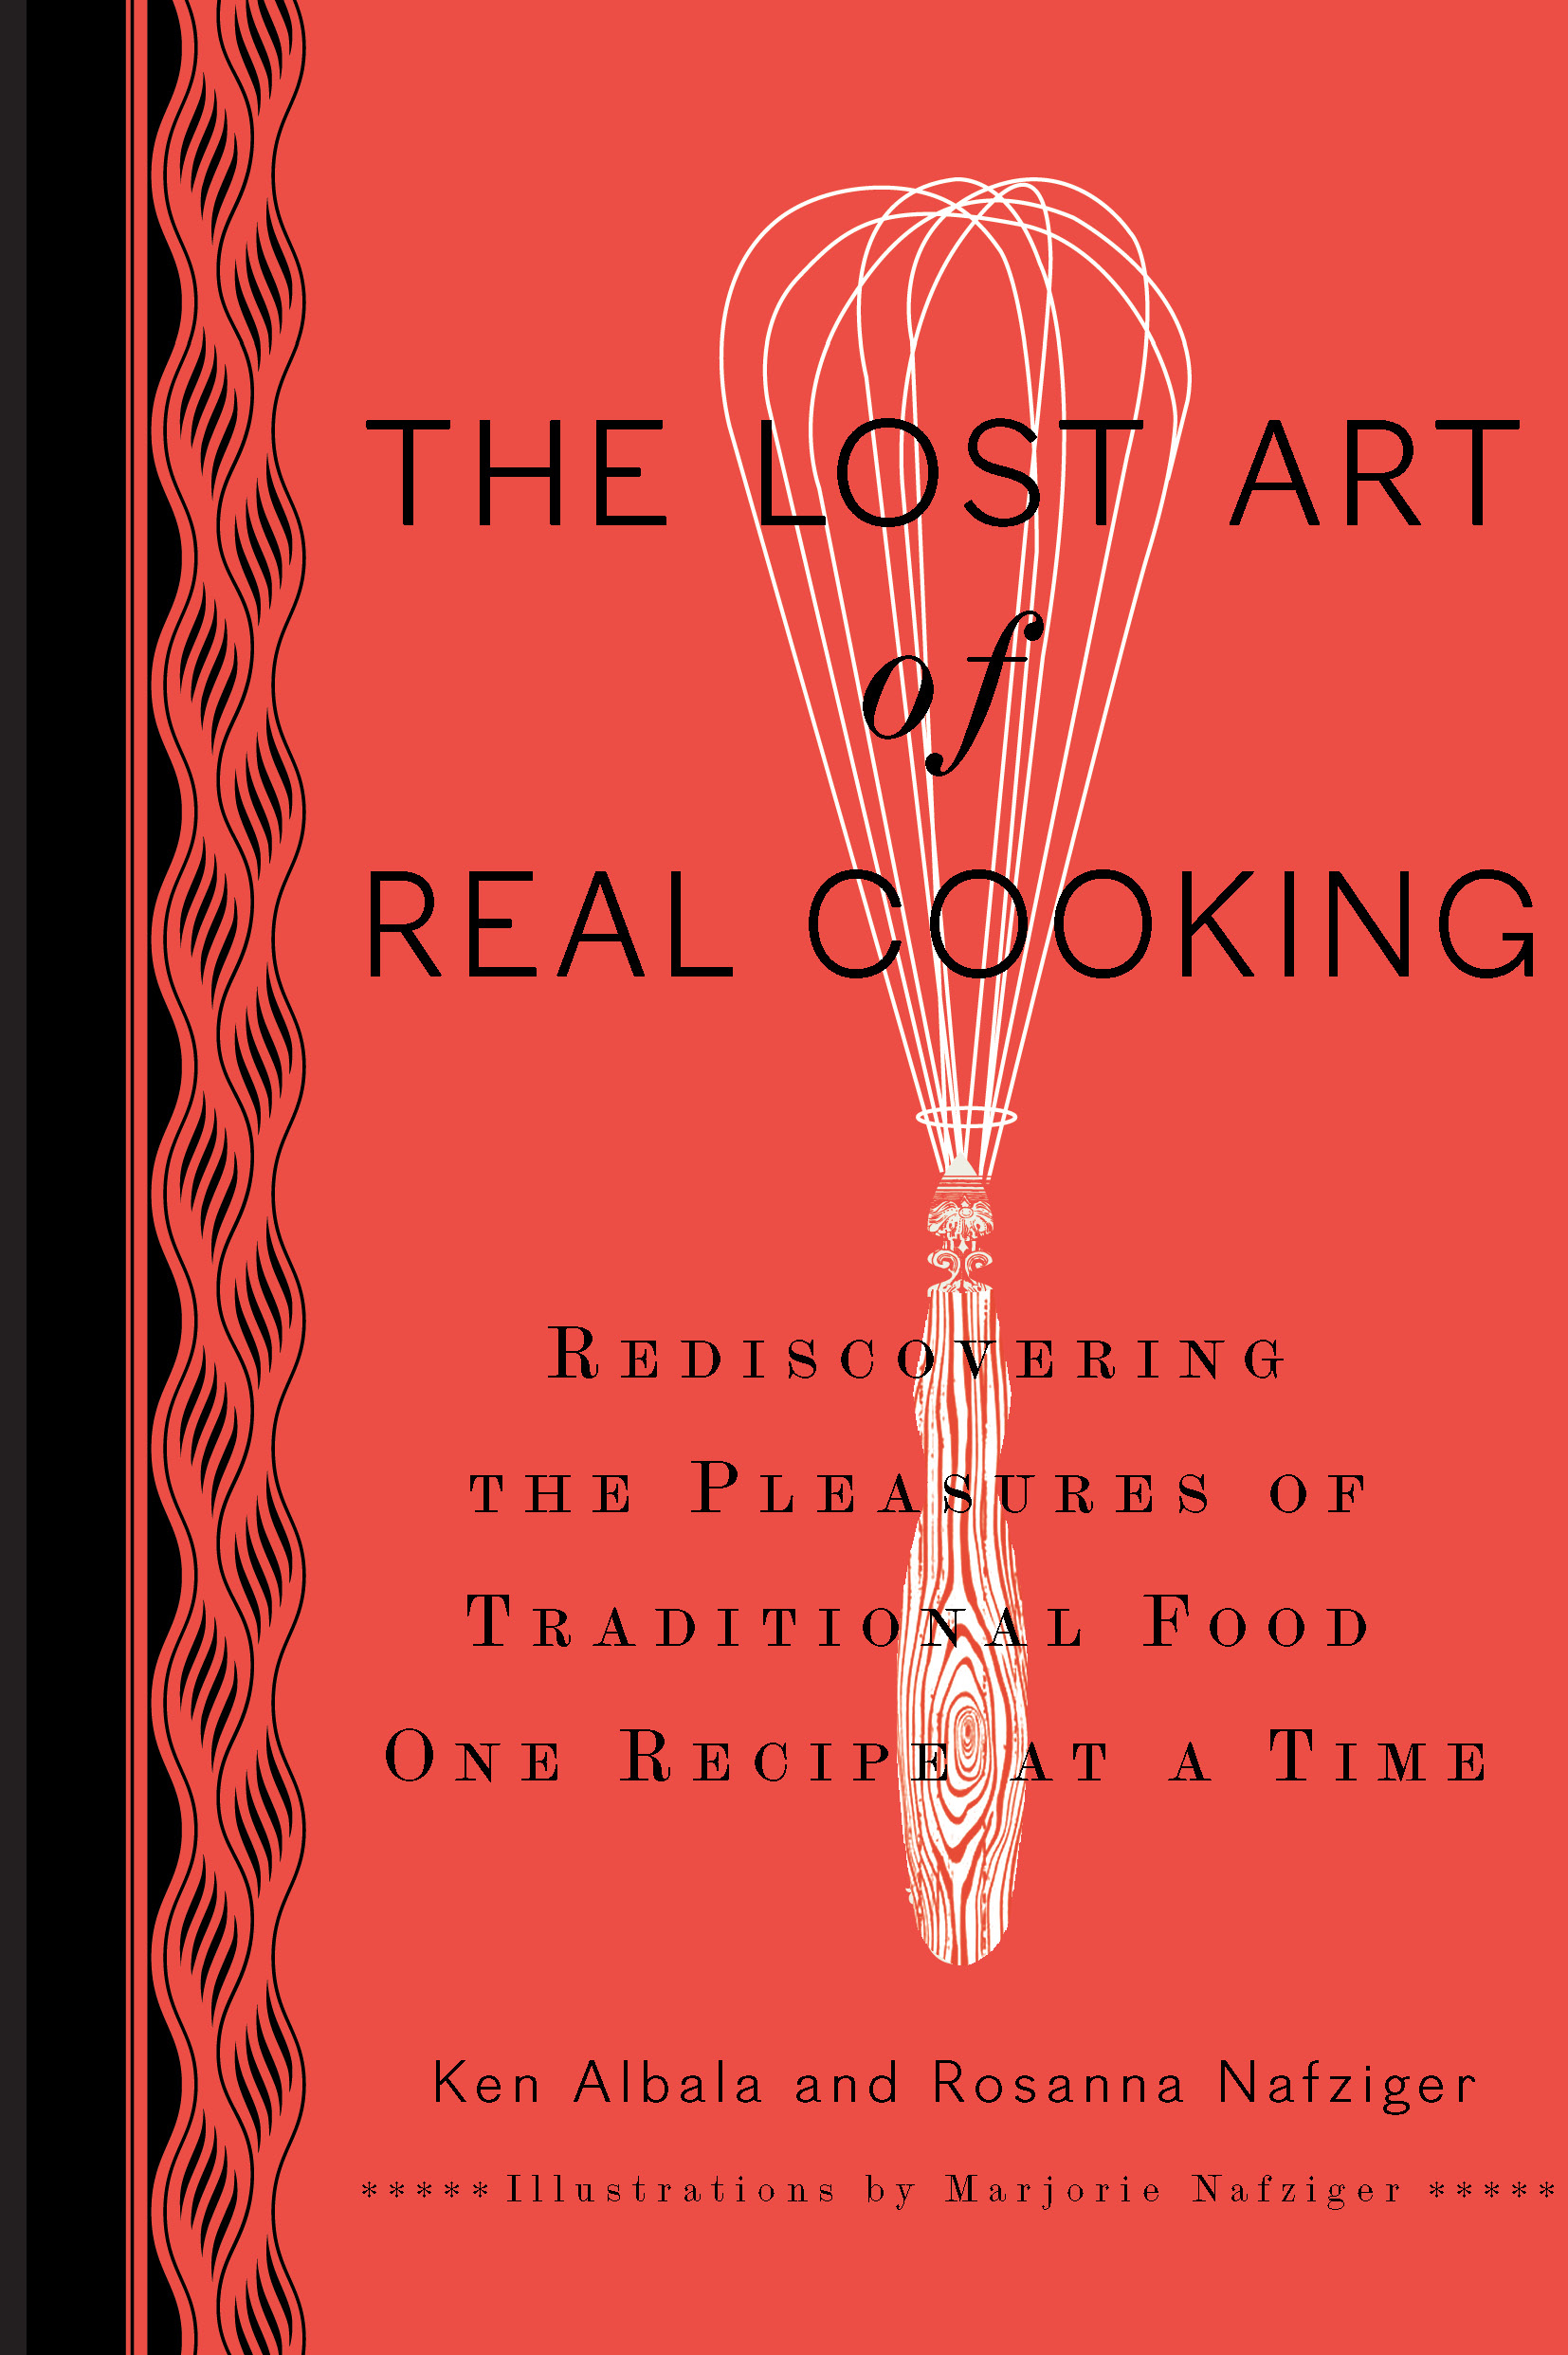 """the lost art of real cooking - """"If Irma S. Rombauer hadn't used the phrase more than 70 years ago, the ideal title for this engaging little volume—half cookbook, half culinary sermon—might have been The Joy of Cooking."""" —The Wall Street Journal""""The Lost Art of Real Cooking is a reminder that inspiring cookbooks can be more useful kitchen tools than any appliance.""""—LA WeeklyPowell's—Amazon—Indiebound—Penguin Randomhouse"""